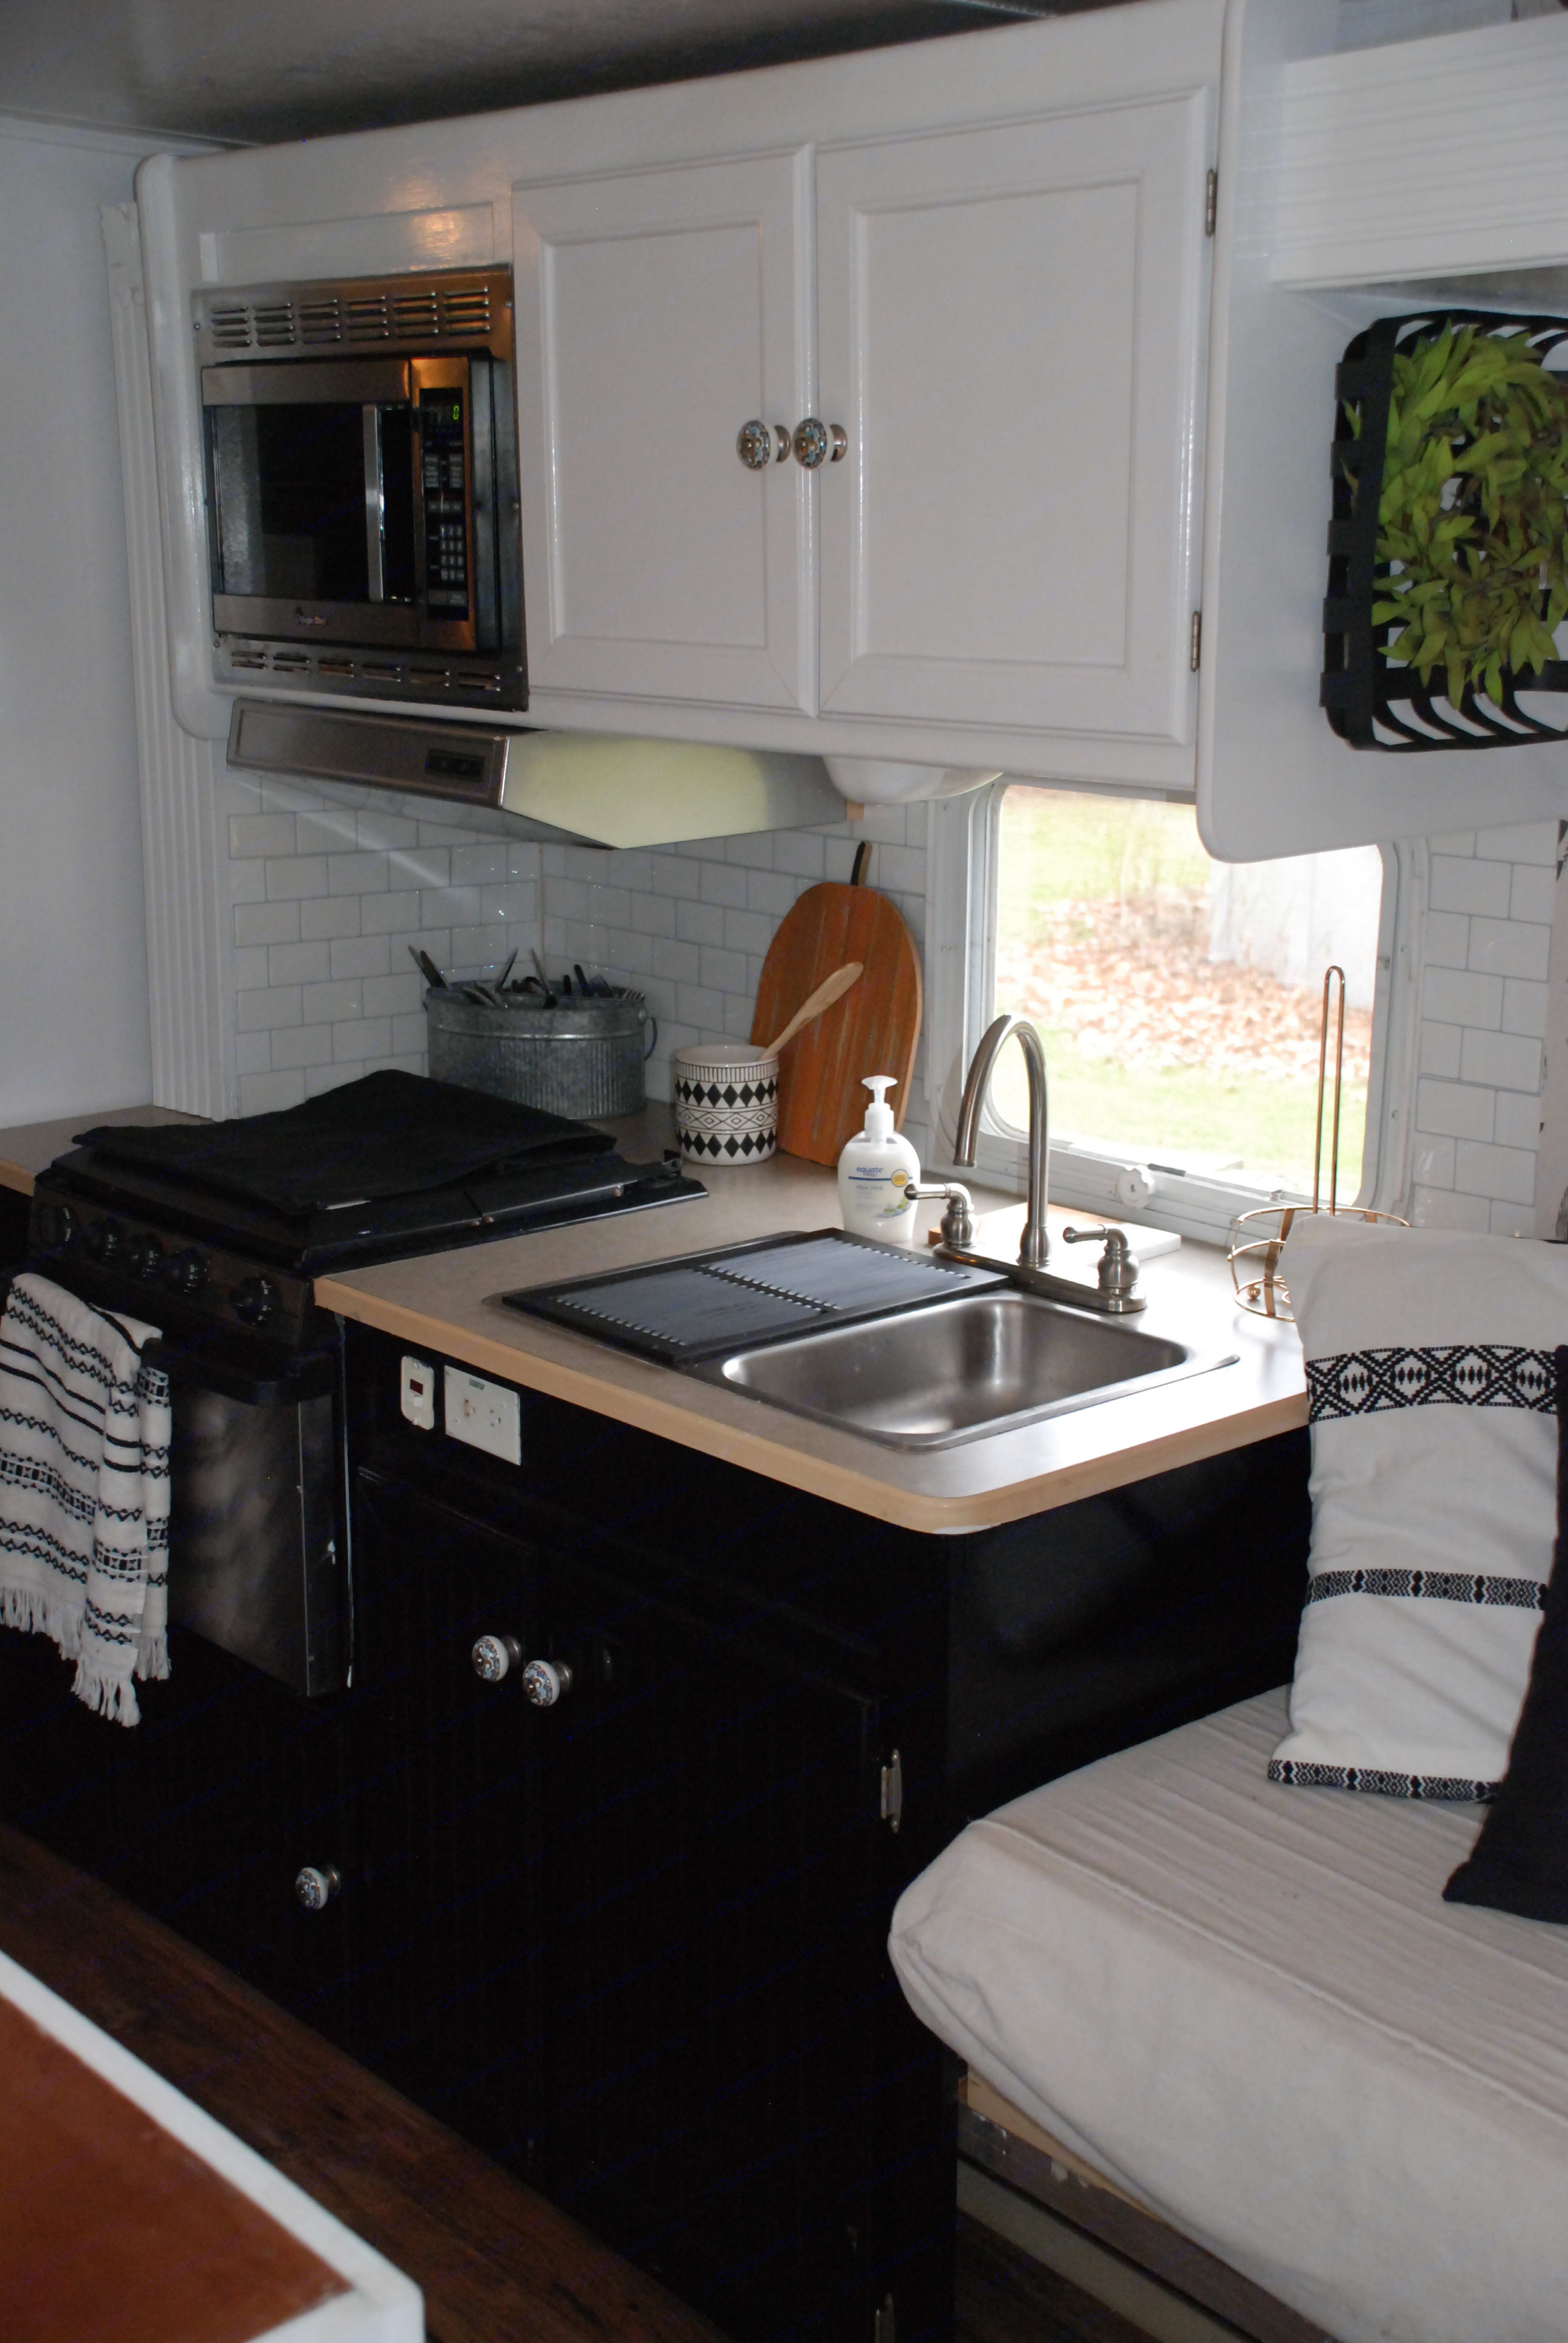 Microwave, stove top, oven. Forest River Surveyor 2004